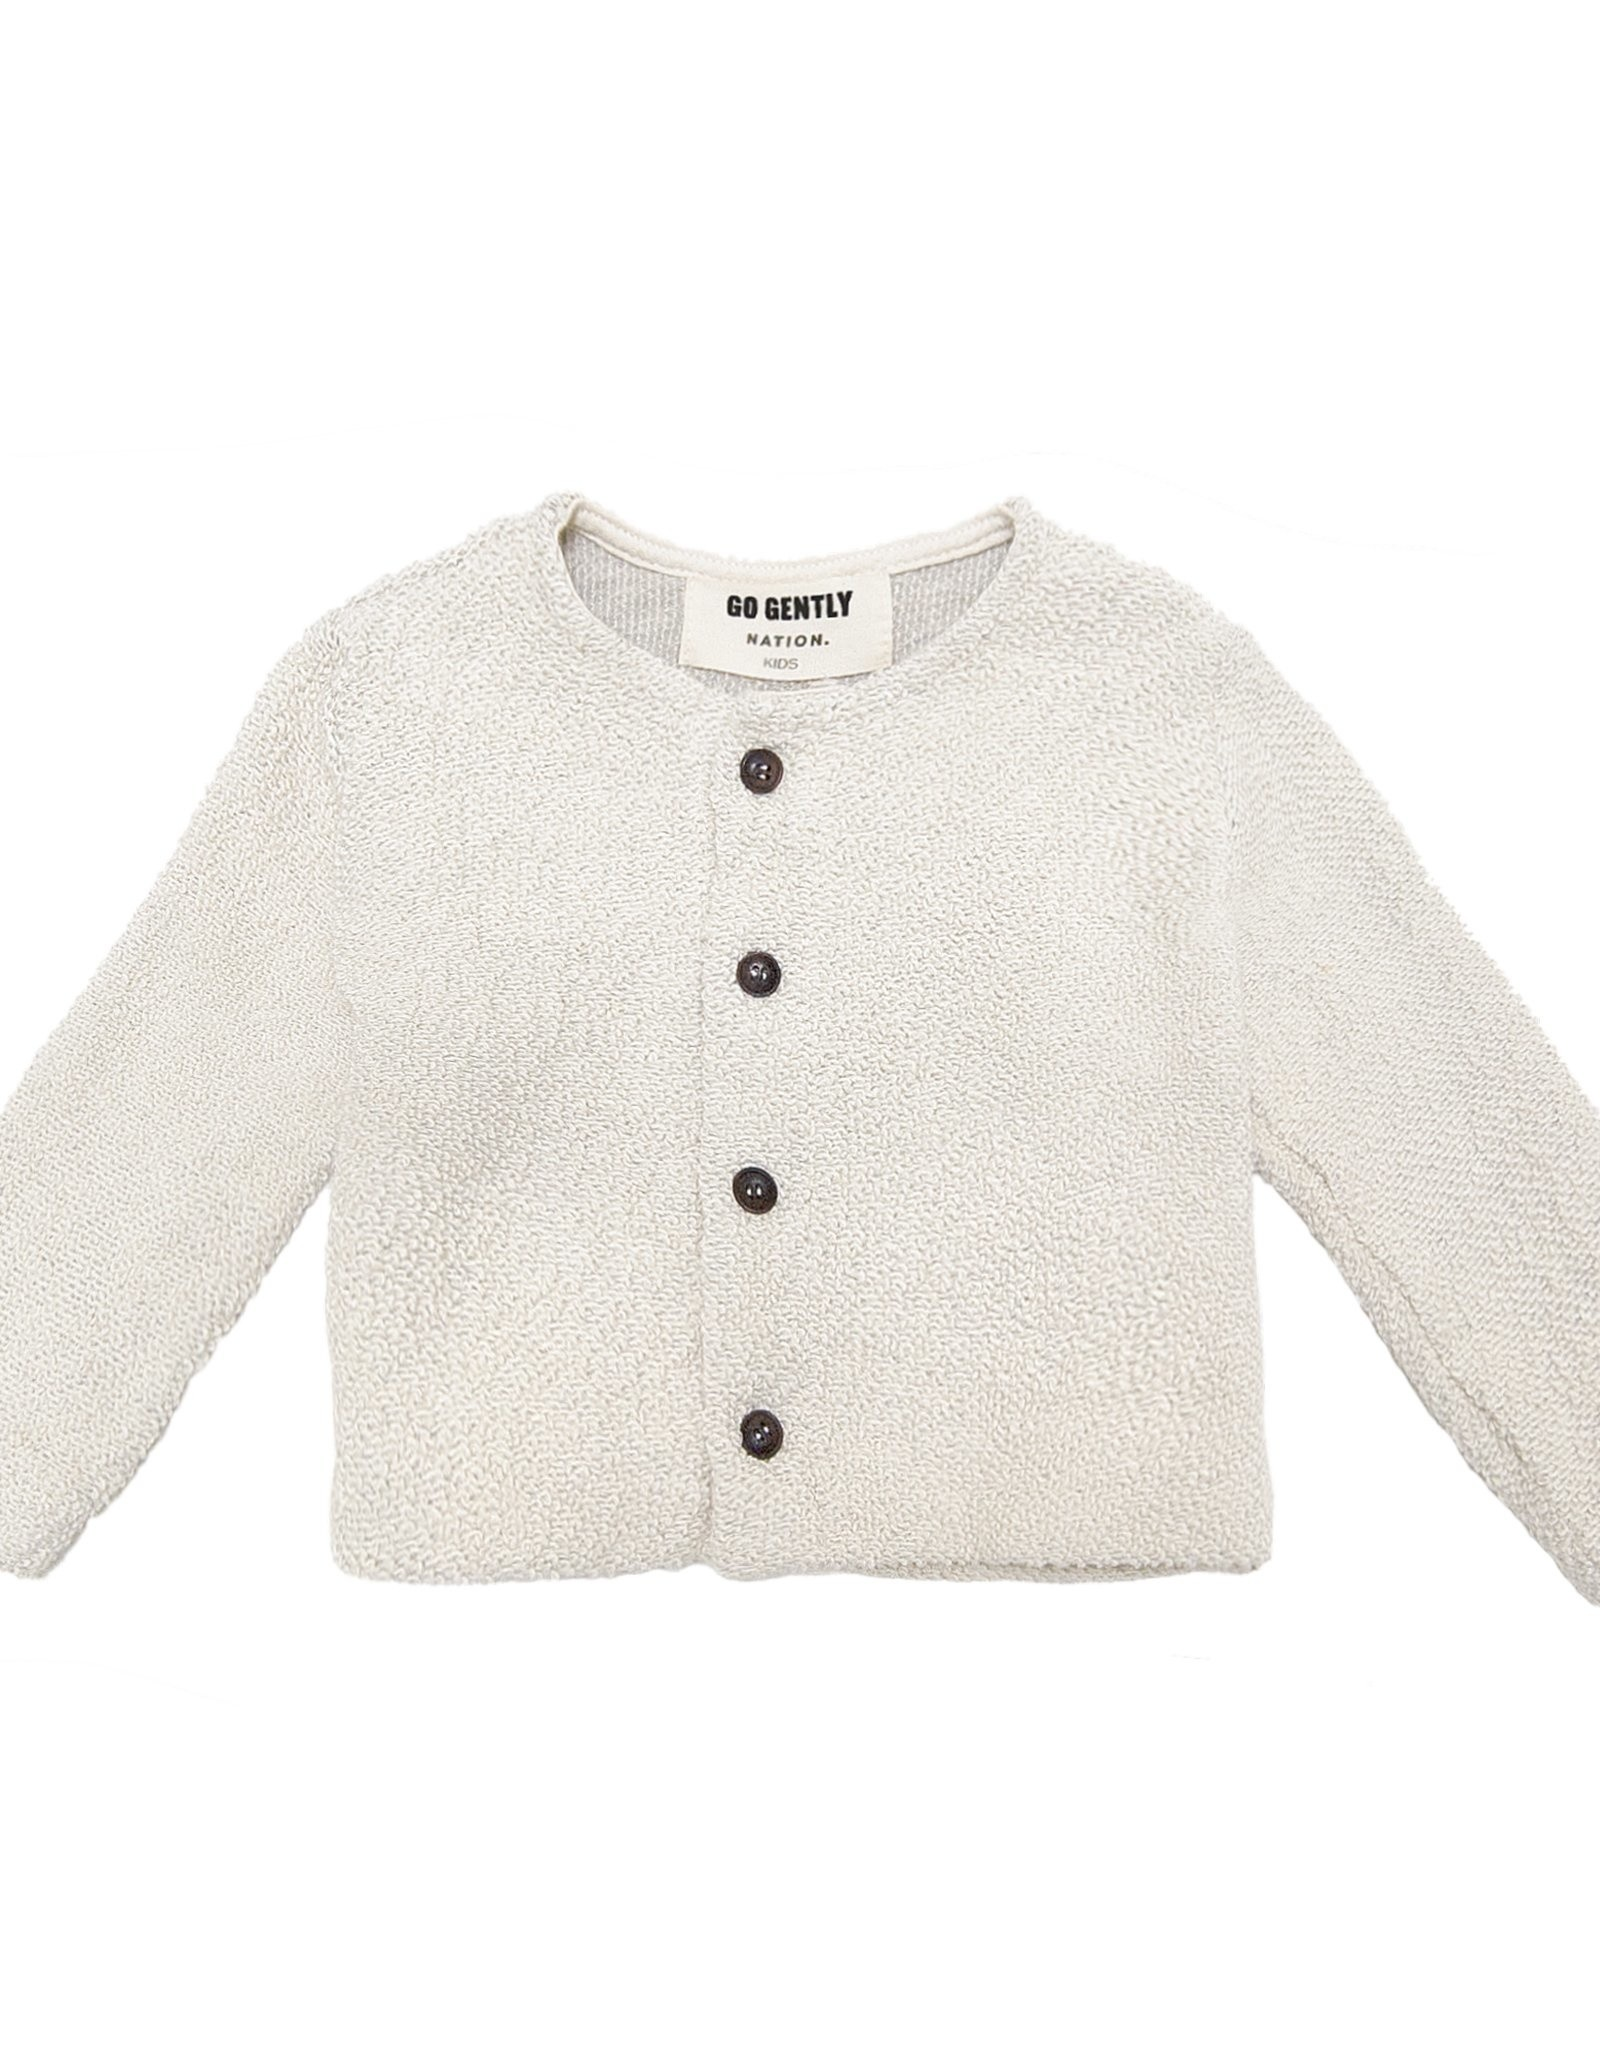 Go Gently Nation Textured knit coat